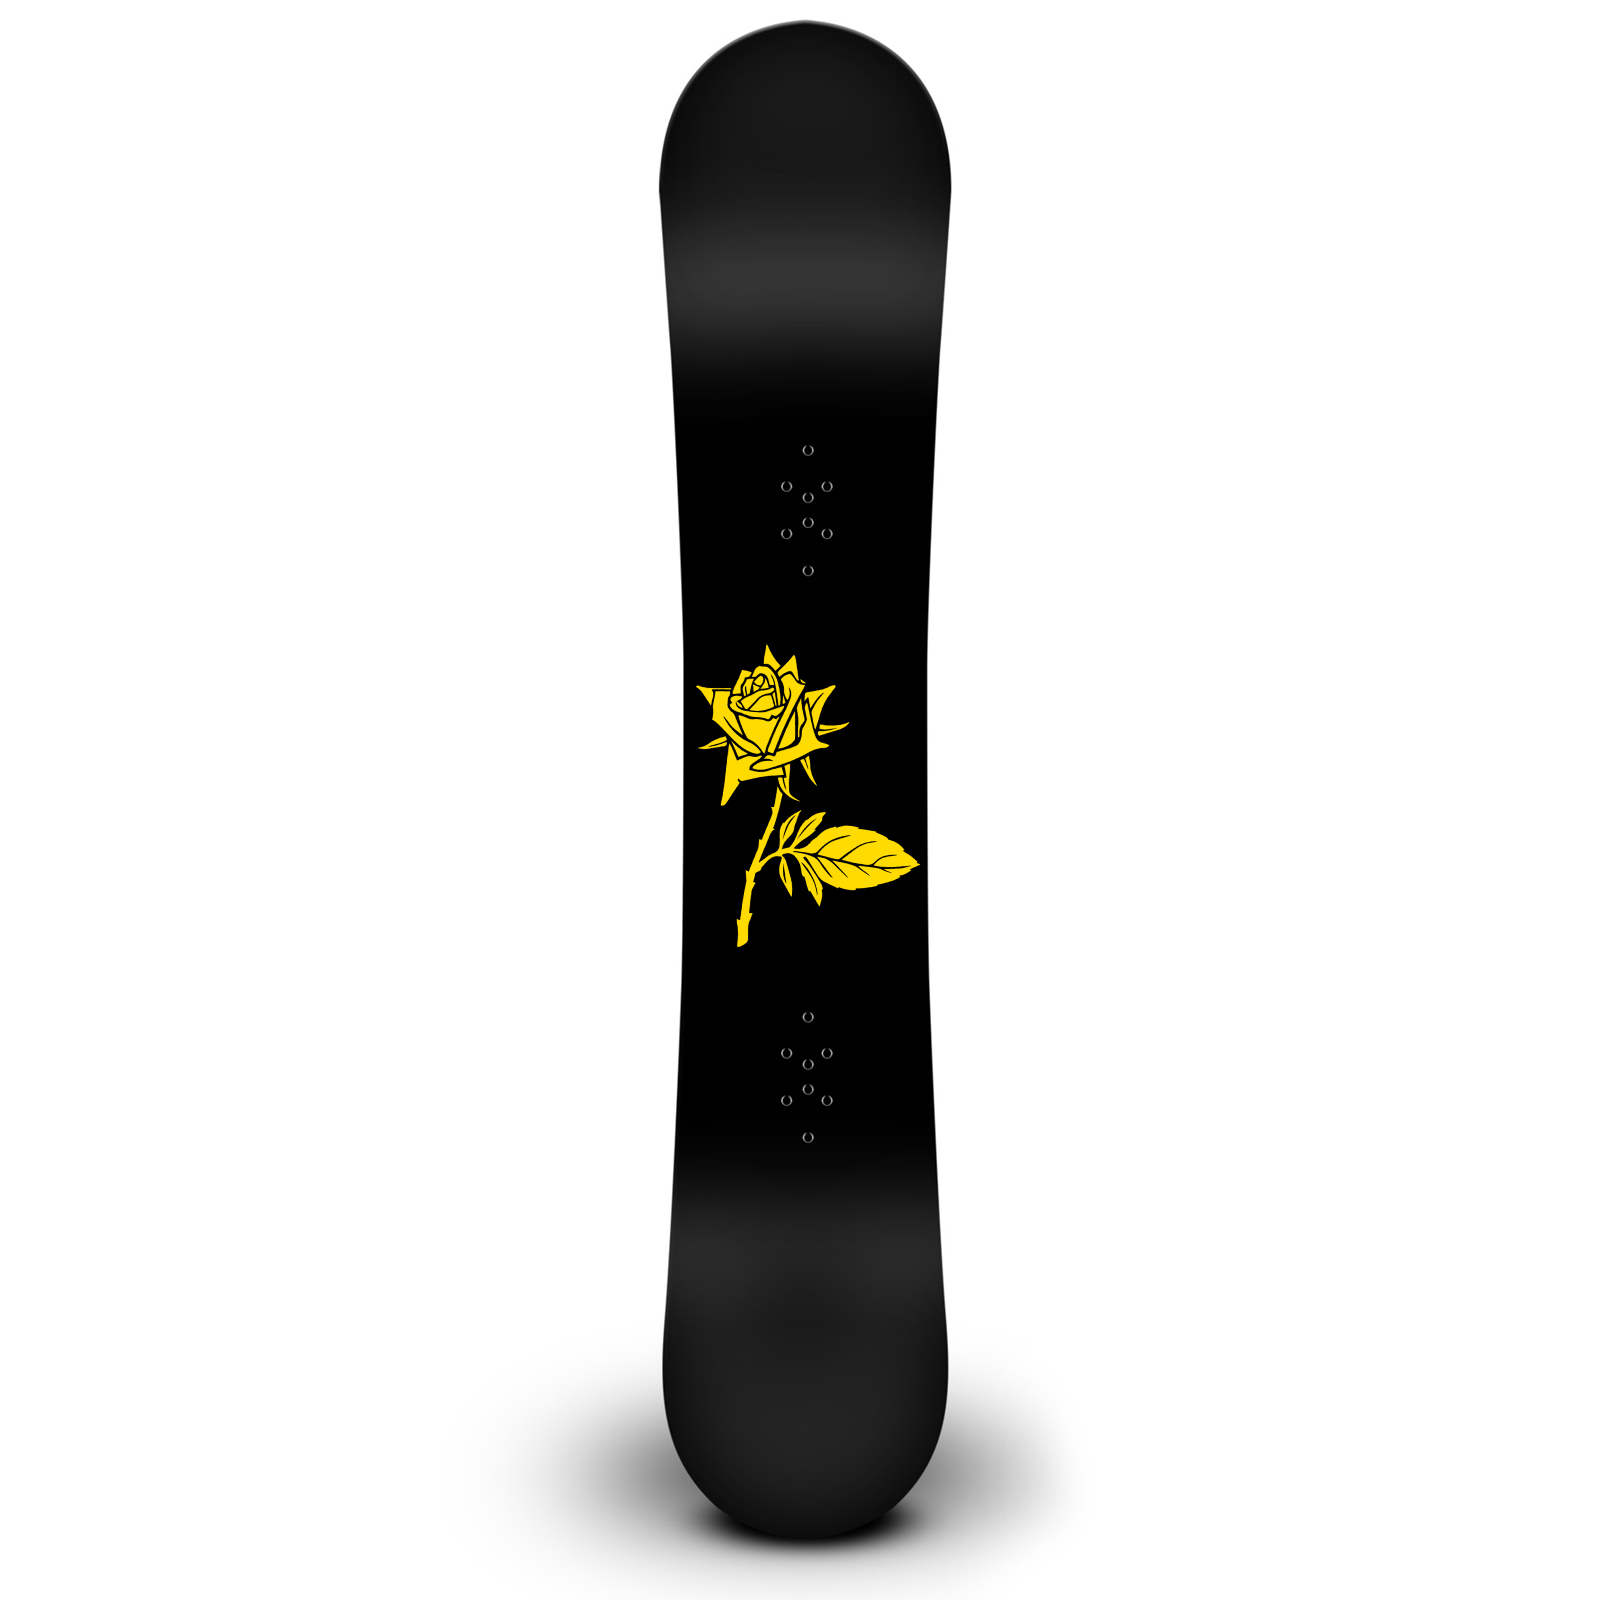 Rose Plant Silhouette Snowboard Sticker All Weather Vinyl Decal